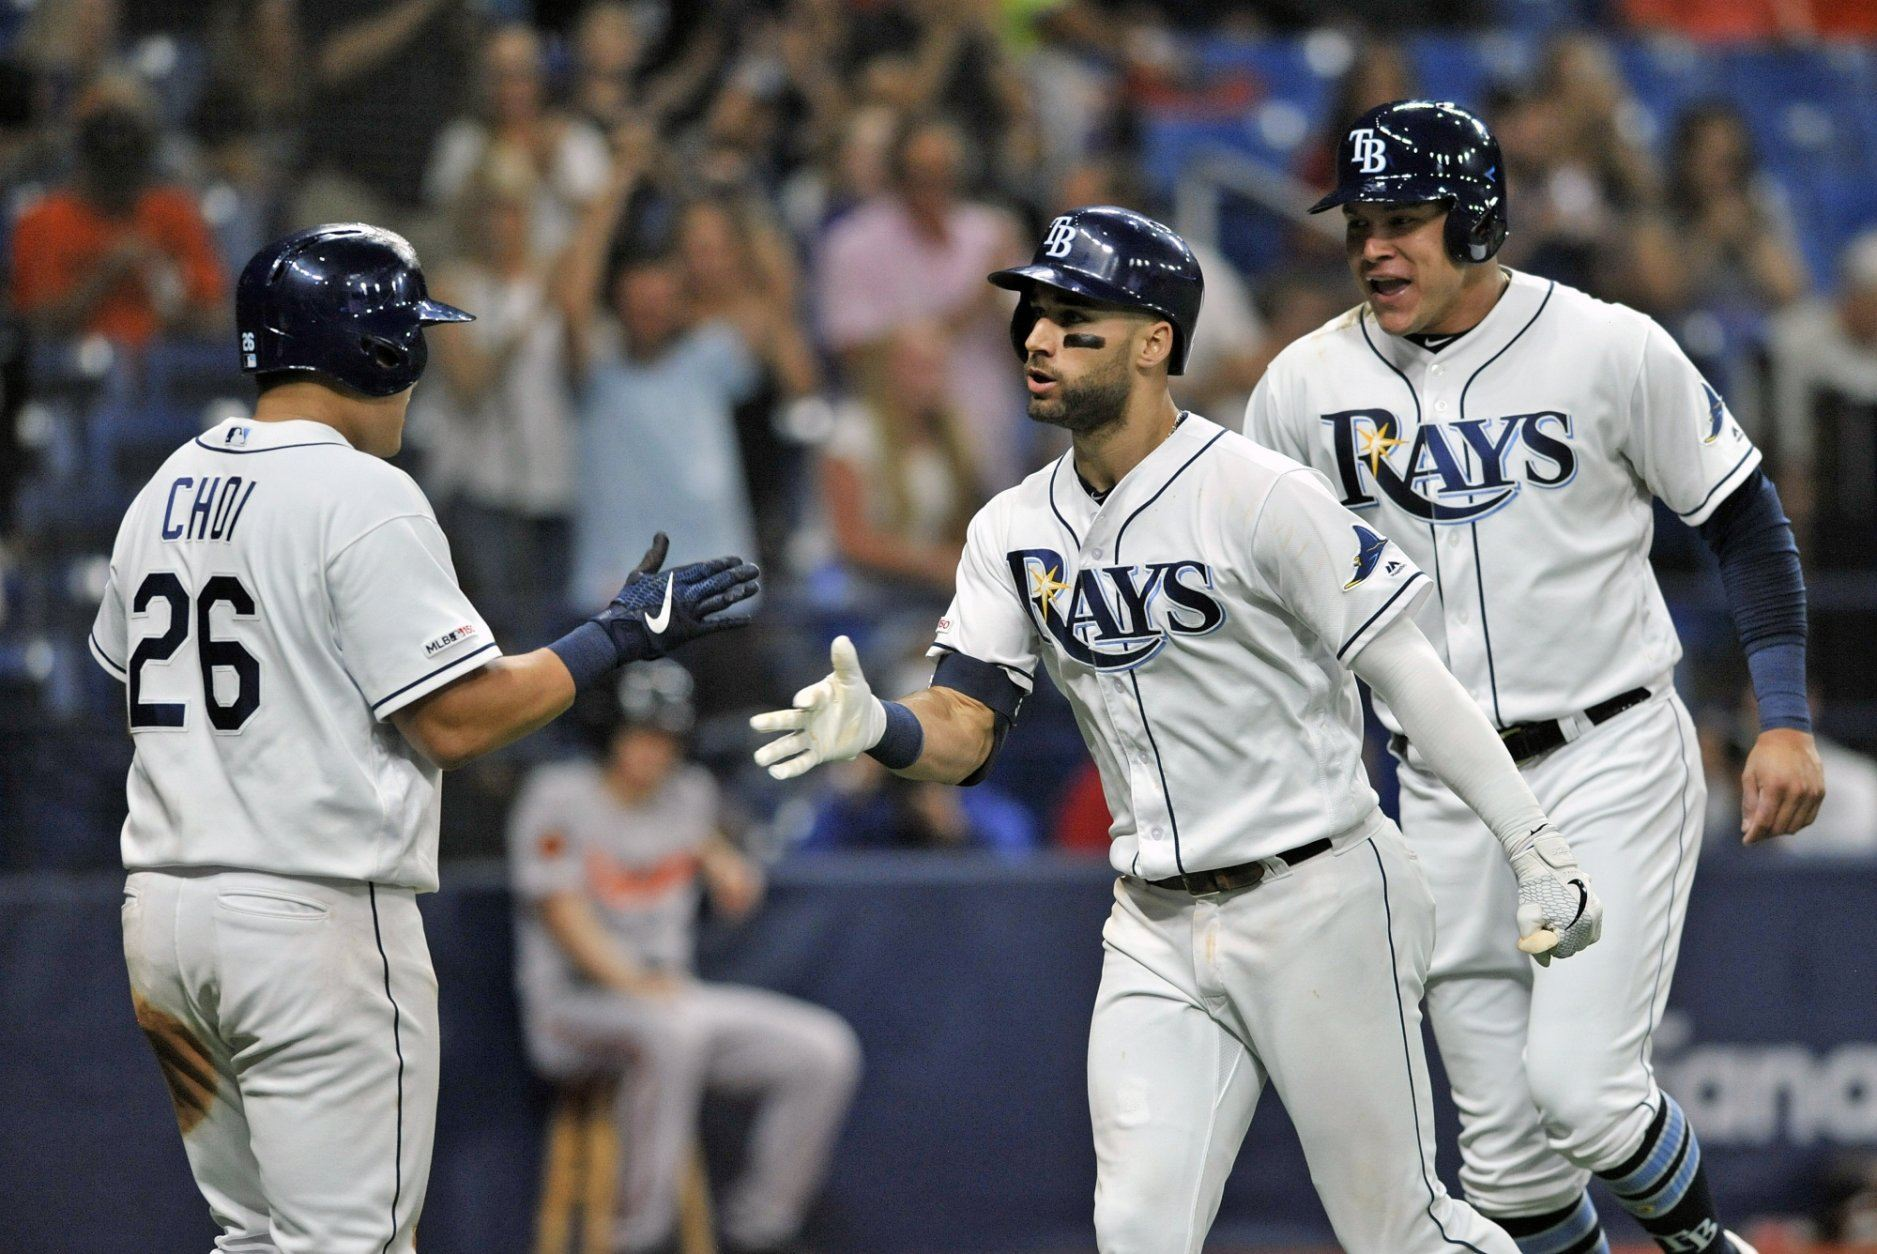 Tampa Bay Rays' Ji-Man Choi (26), Kevin Kiermaier, center, and Avisail Garcia, right, celebrate Kiermaier's three-run home run off Baltimore Orioles reliever Branden Kline during the sixth inning of a baseball game Monday, July 1, 2019, in St. Petersburg, Fla. (AP Photo/Steve Nesius)